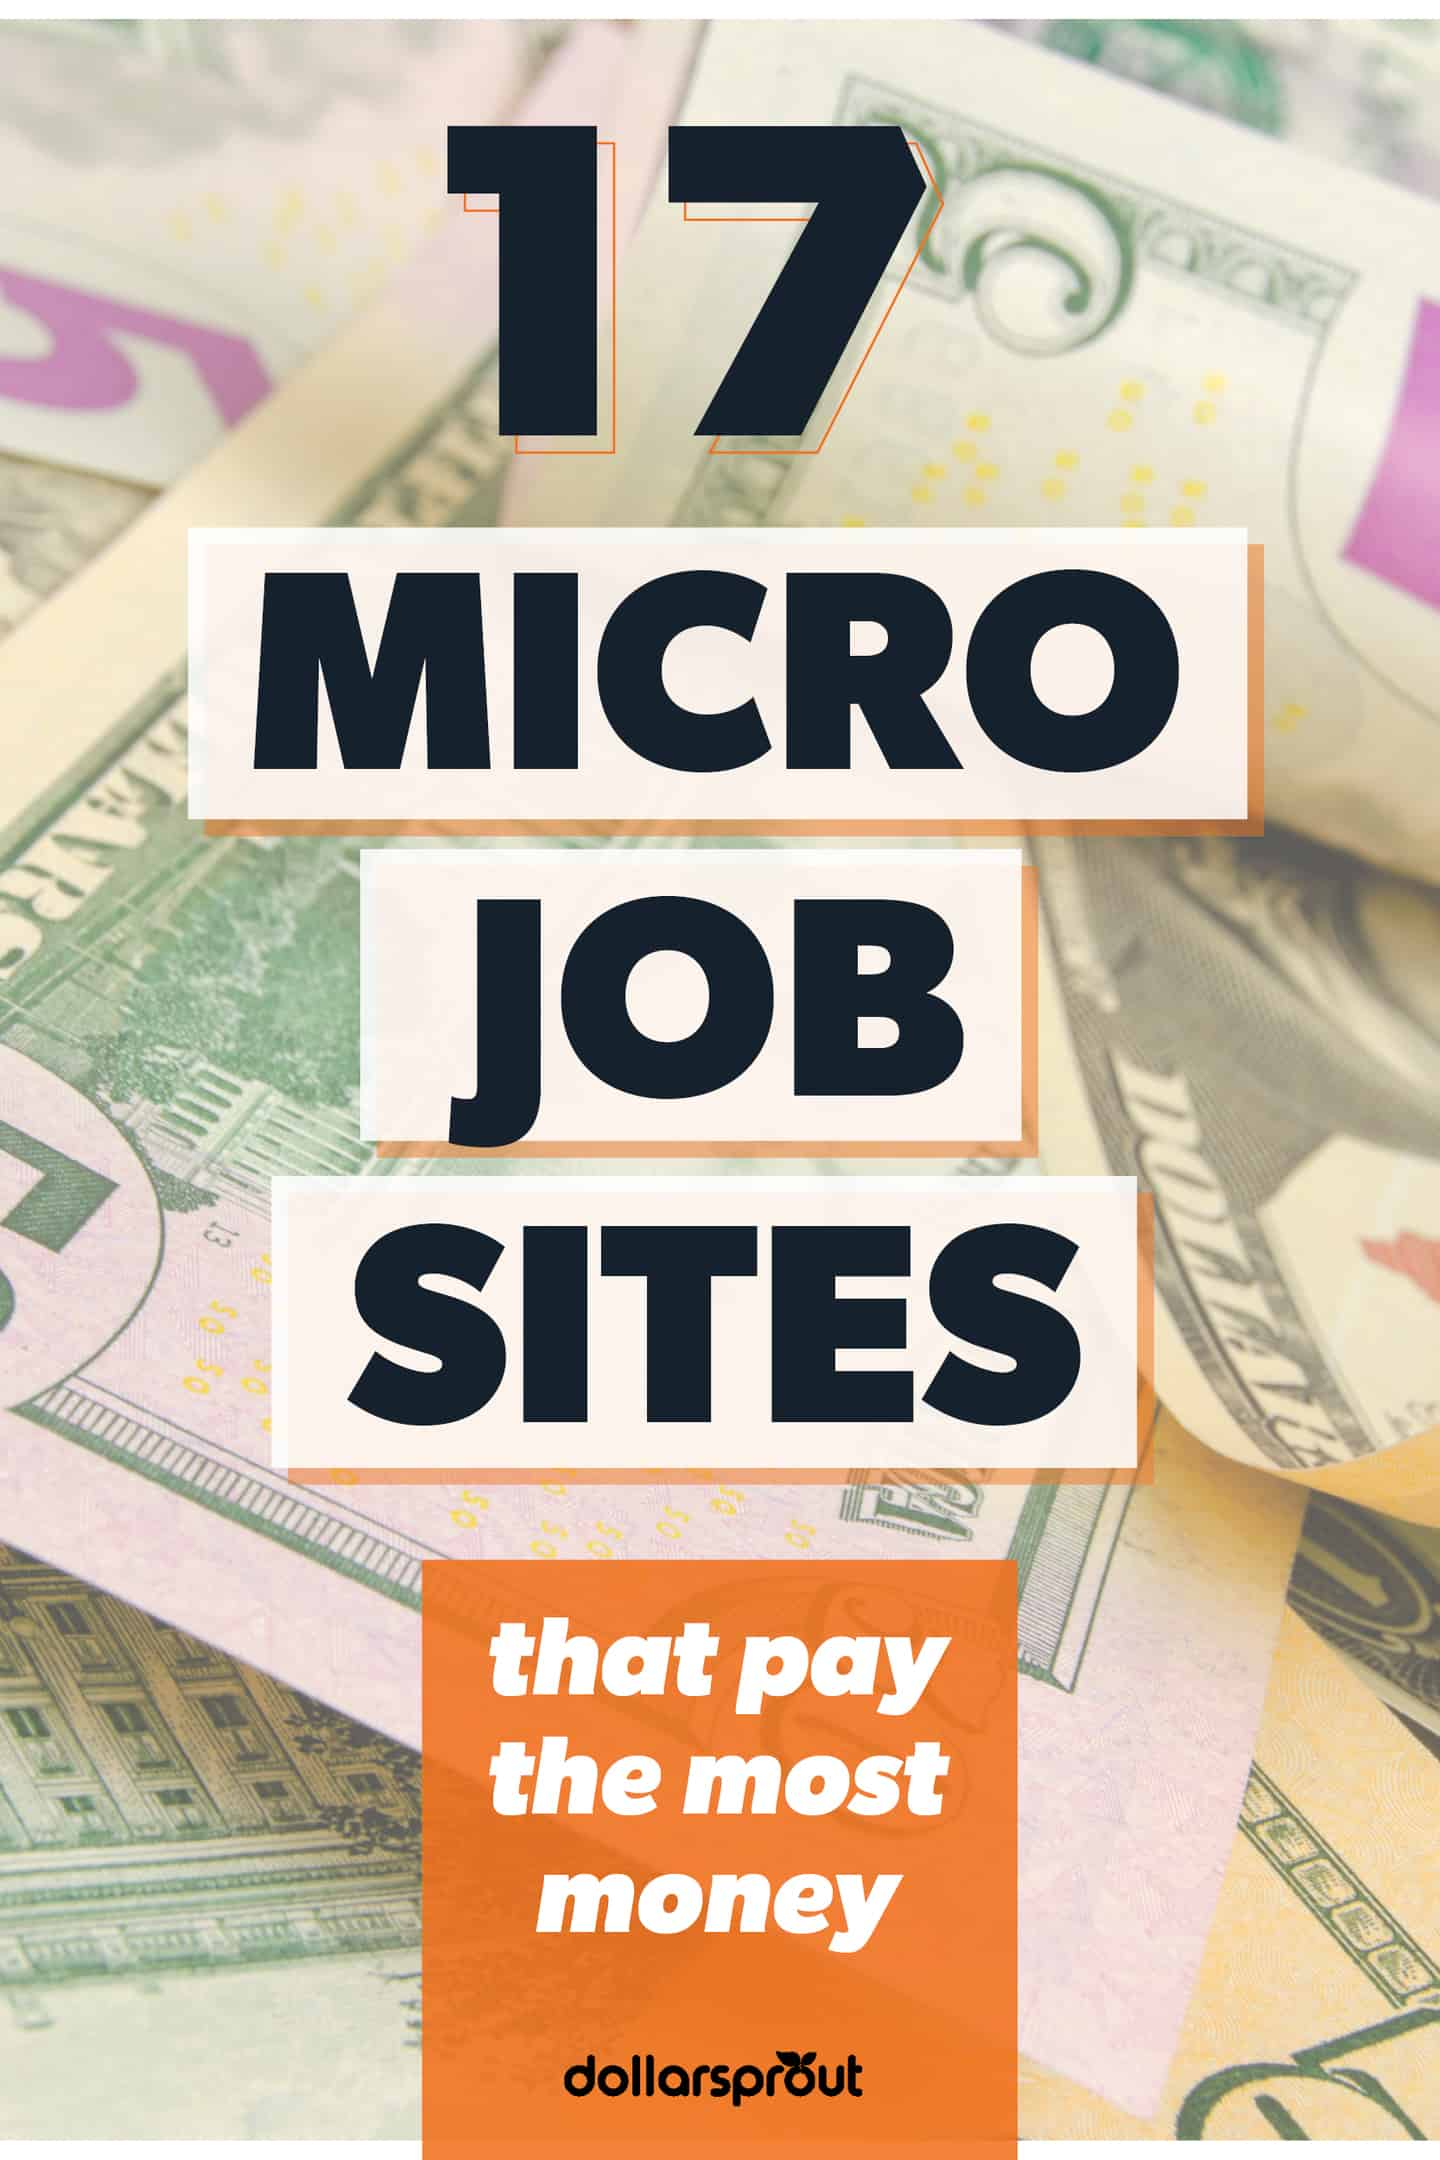 Micro jobs have exploded in popularity with the rise of the gig economy. Often done in 15 minutes or less, micro jobs offer a way to make extra money fast, especially when you're in a pinch. Here are the 17 best micro job sites you can use to find small tasks to complete for cash (with payouts in cash, sent to PayPal, or in the form of free gift cards).